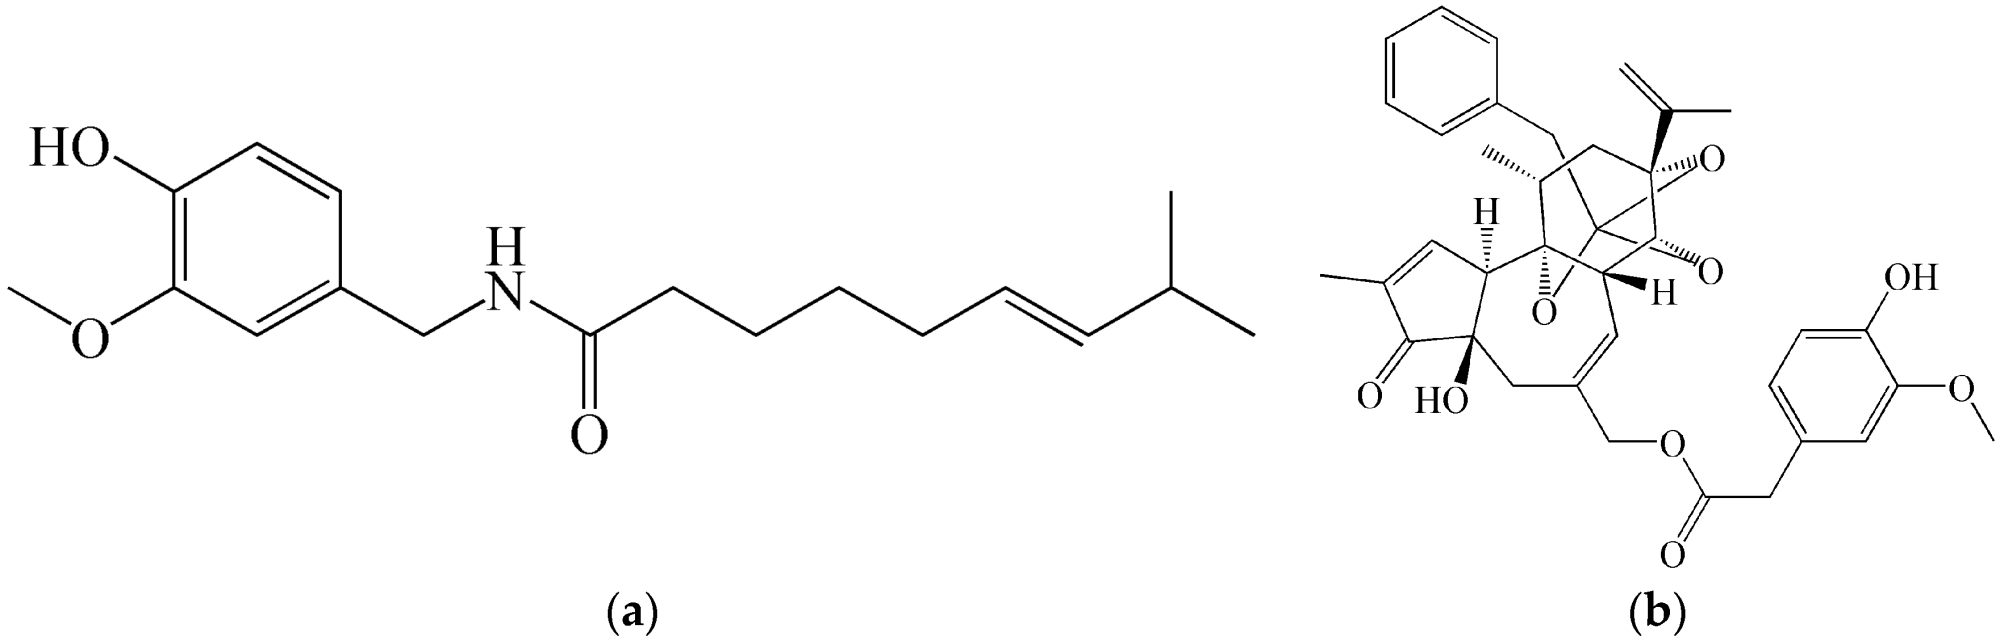 hight resolution of molecules 21 00556 g007 figure 7 chemical structures